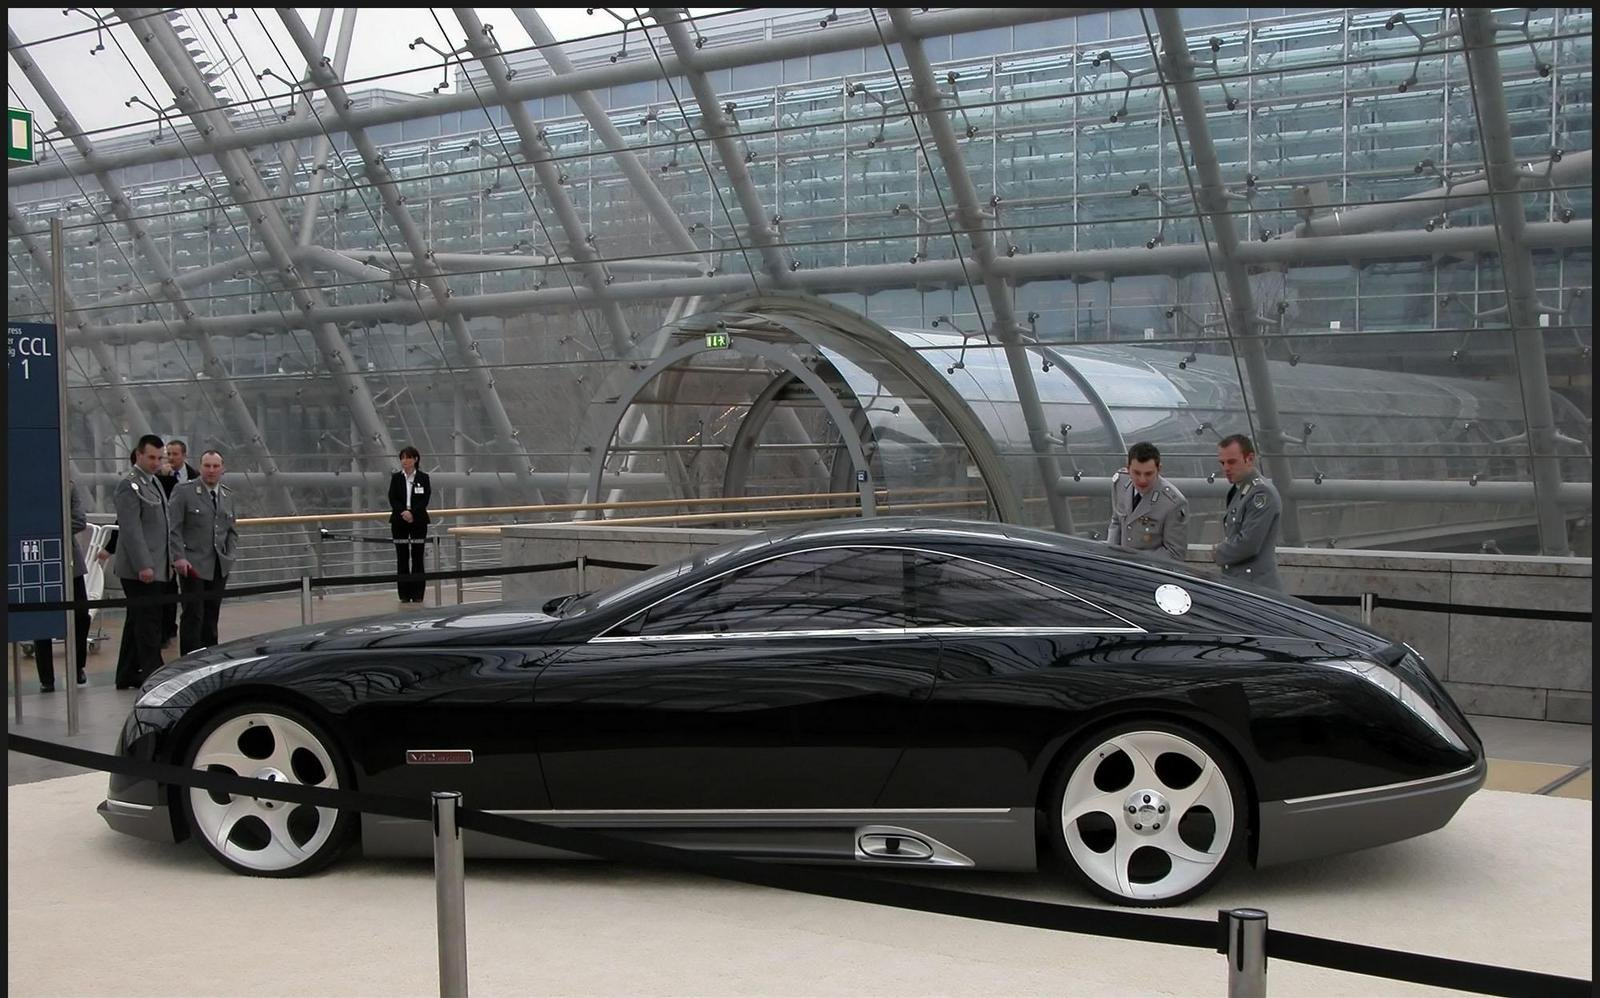 http://pictures.topspeed.com/IMG/crop/200604/2005-maybach-exelero-8_1600x0w.jpg